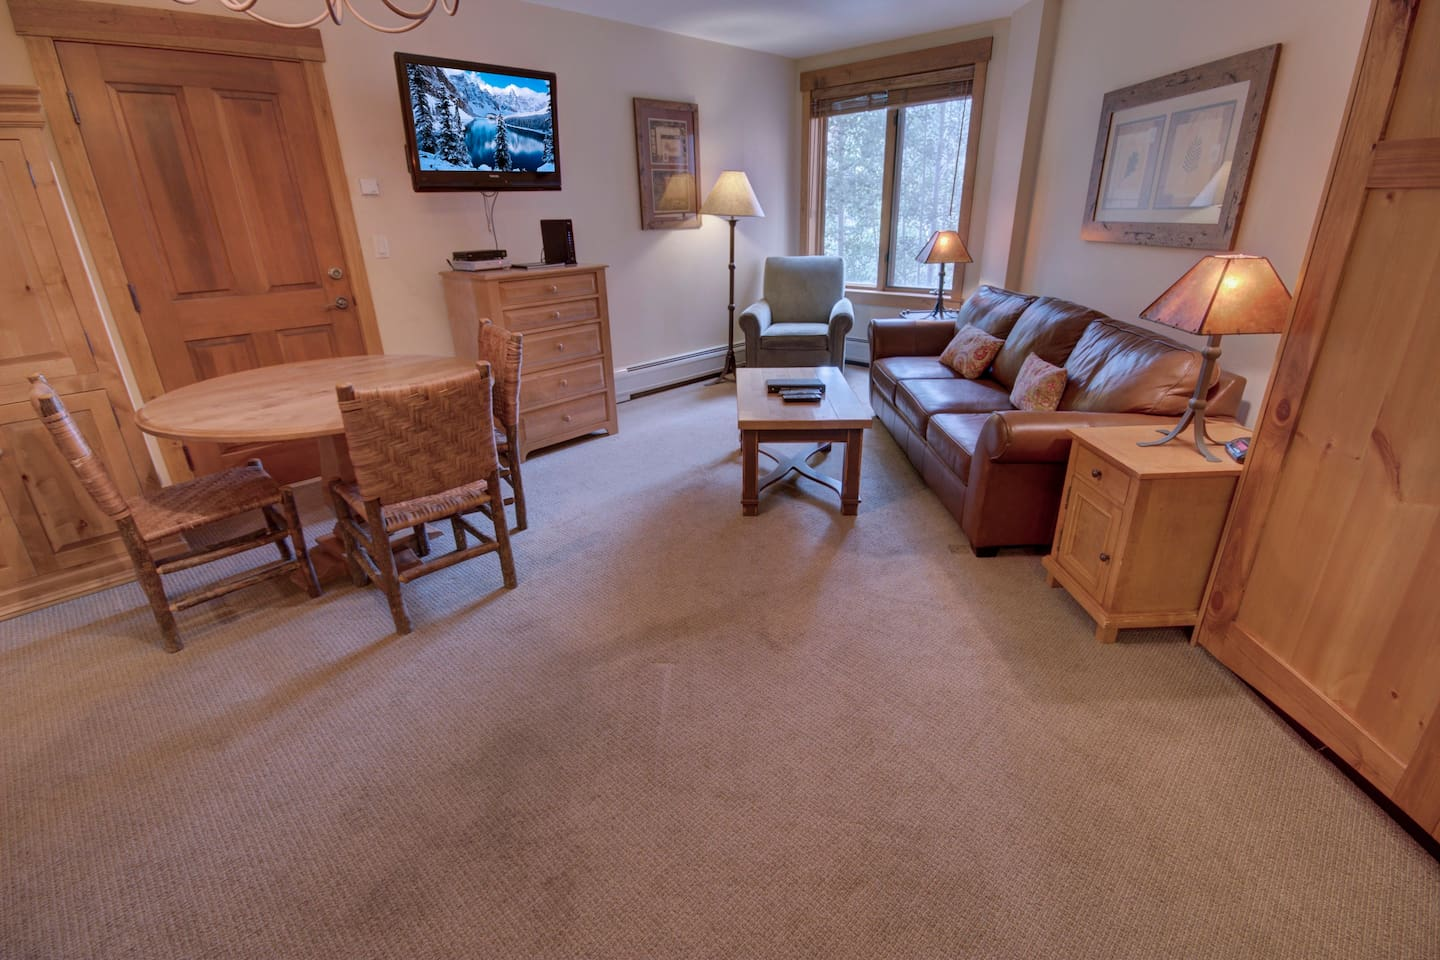 Open living room with a TV and storage